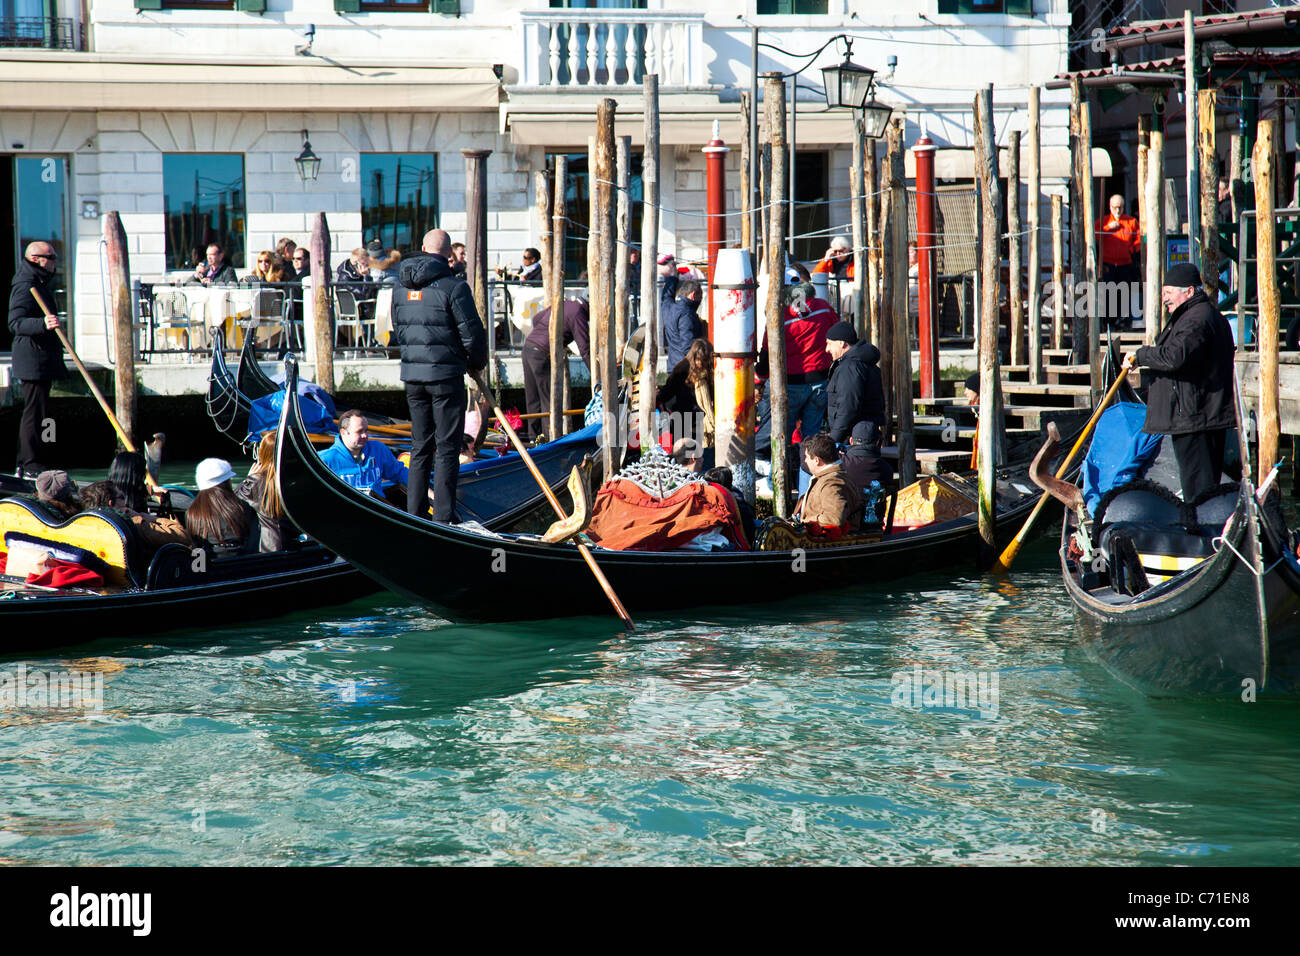 Gondolas picking up tourists by the Grand Canal in Venice Italy. - Stock Image